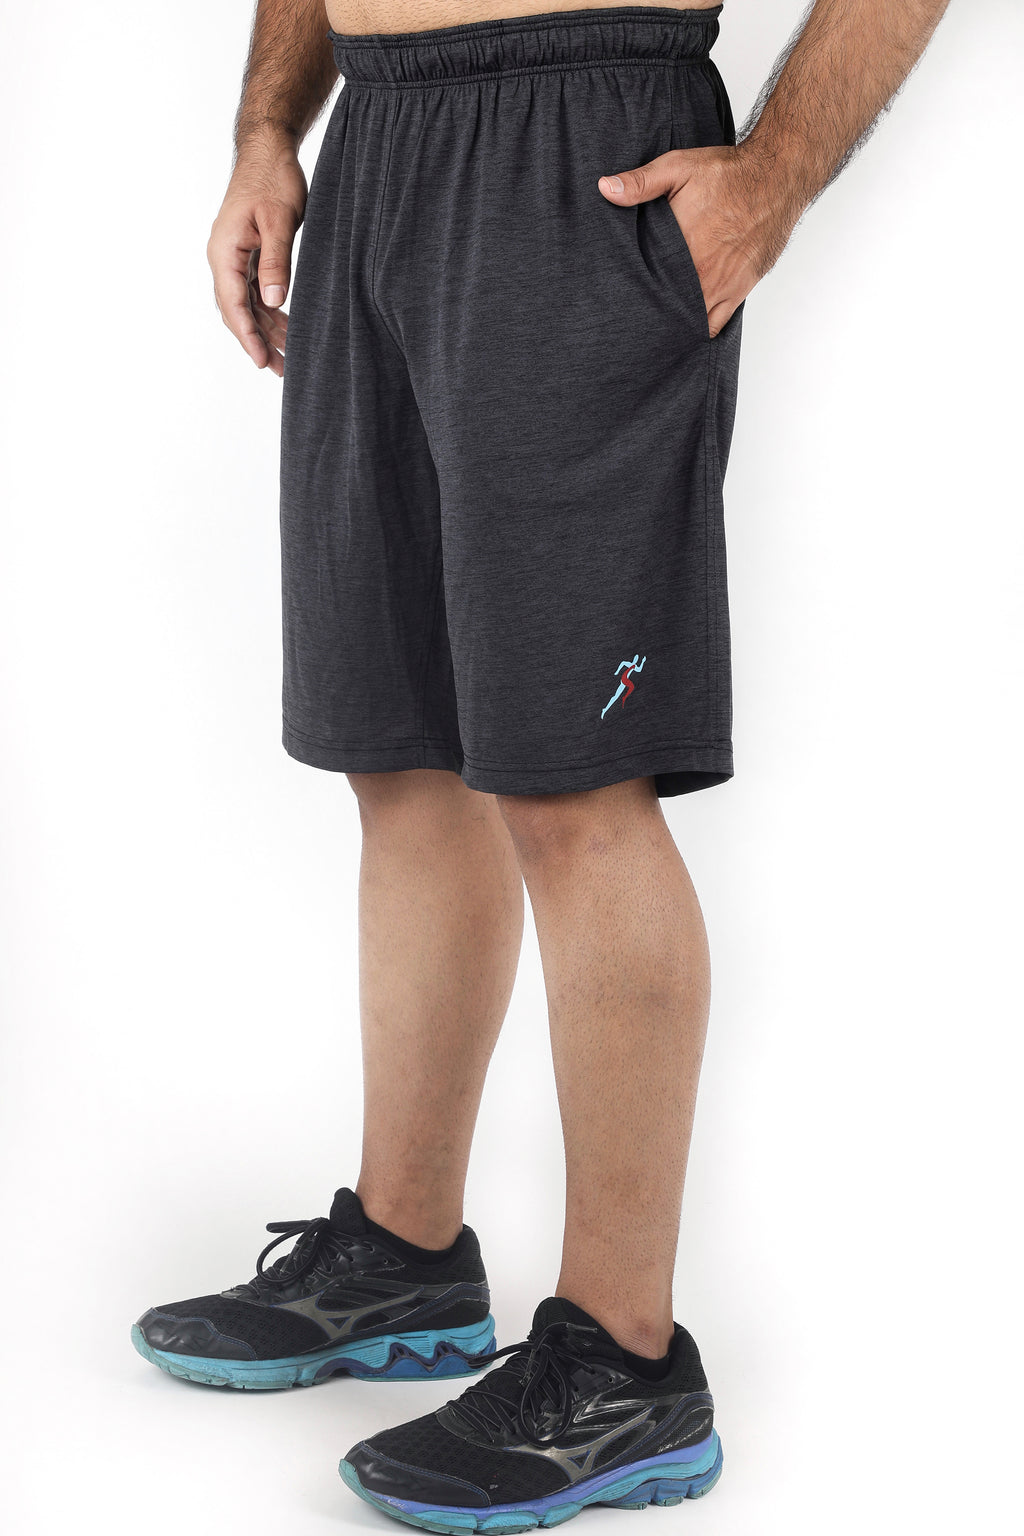 Jump 10 inch Gym Training Shorts